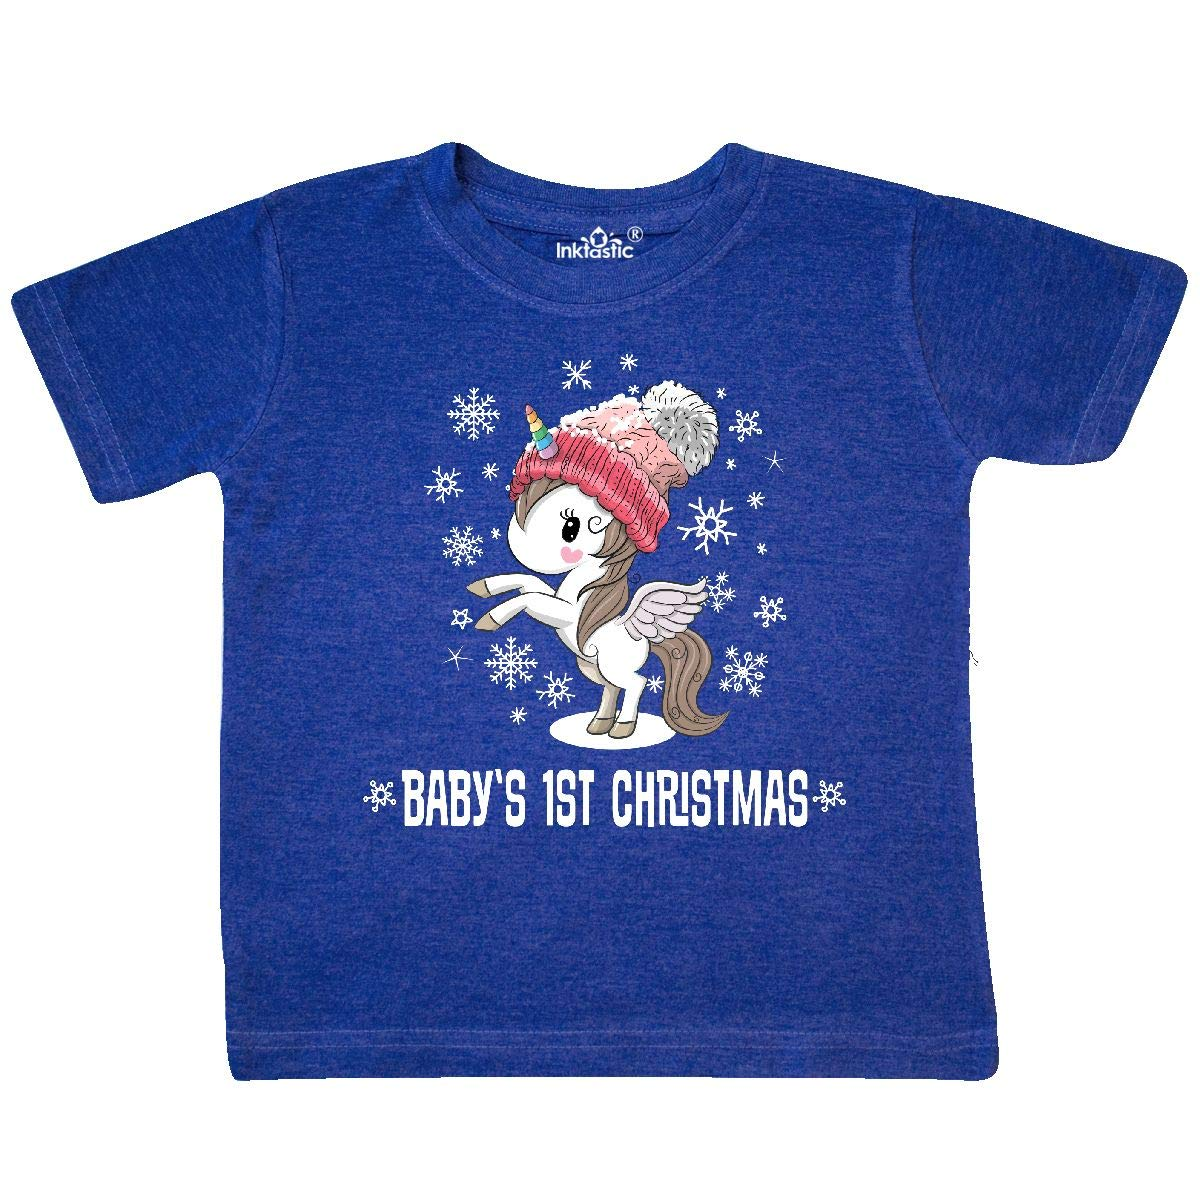 inktastic Babys 1st Christmas Unicorn Girls Toddler T-Shirt